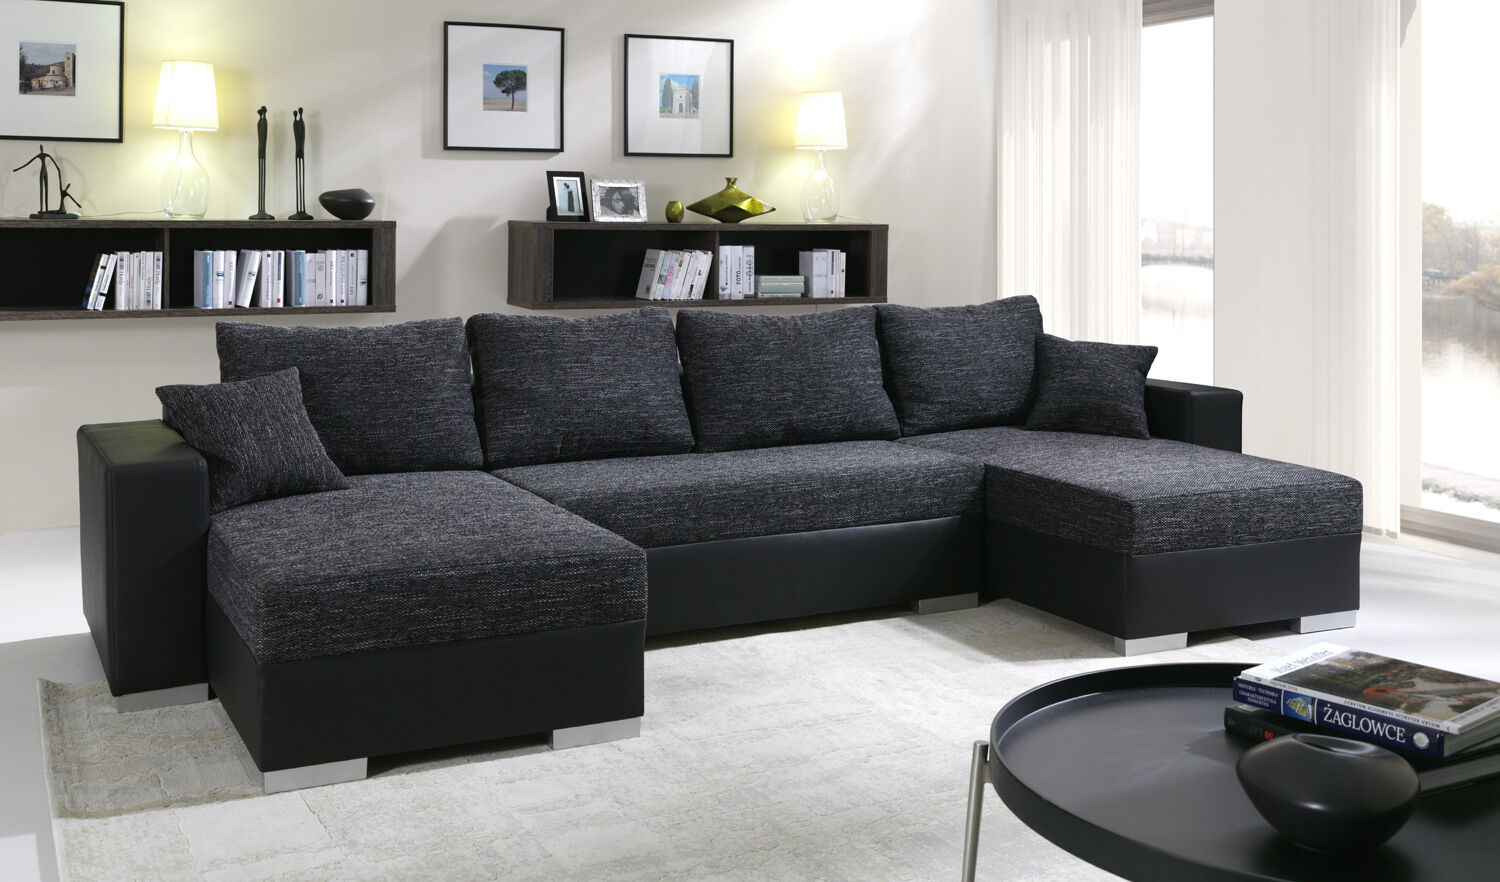 couchgarnitur ecksofa eckcouch sofagarnitur sofa 4112200 3 mit schlaffunktion chf. Black Bedroom Furniture Sets. Home Design Ideas